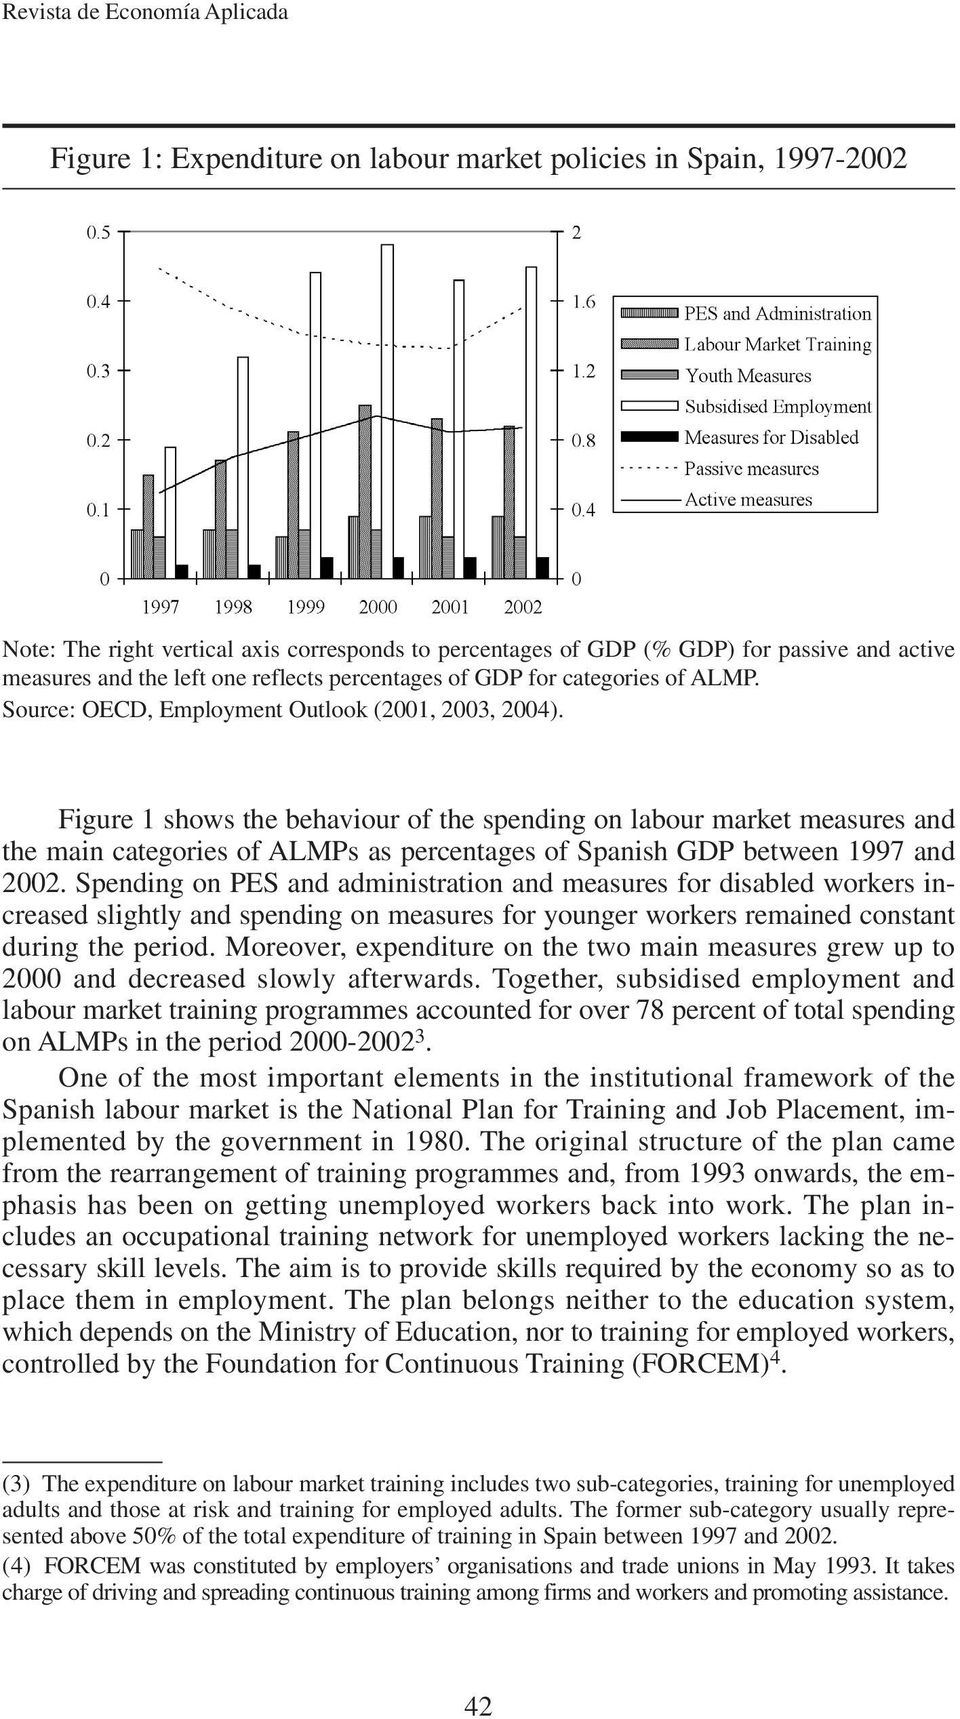 Figure 1 shows the behaviour of the spending on labour market measures and the main categories of ALMPs as percentages of Spanish GDP between 1997 and 2002.